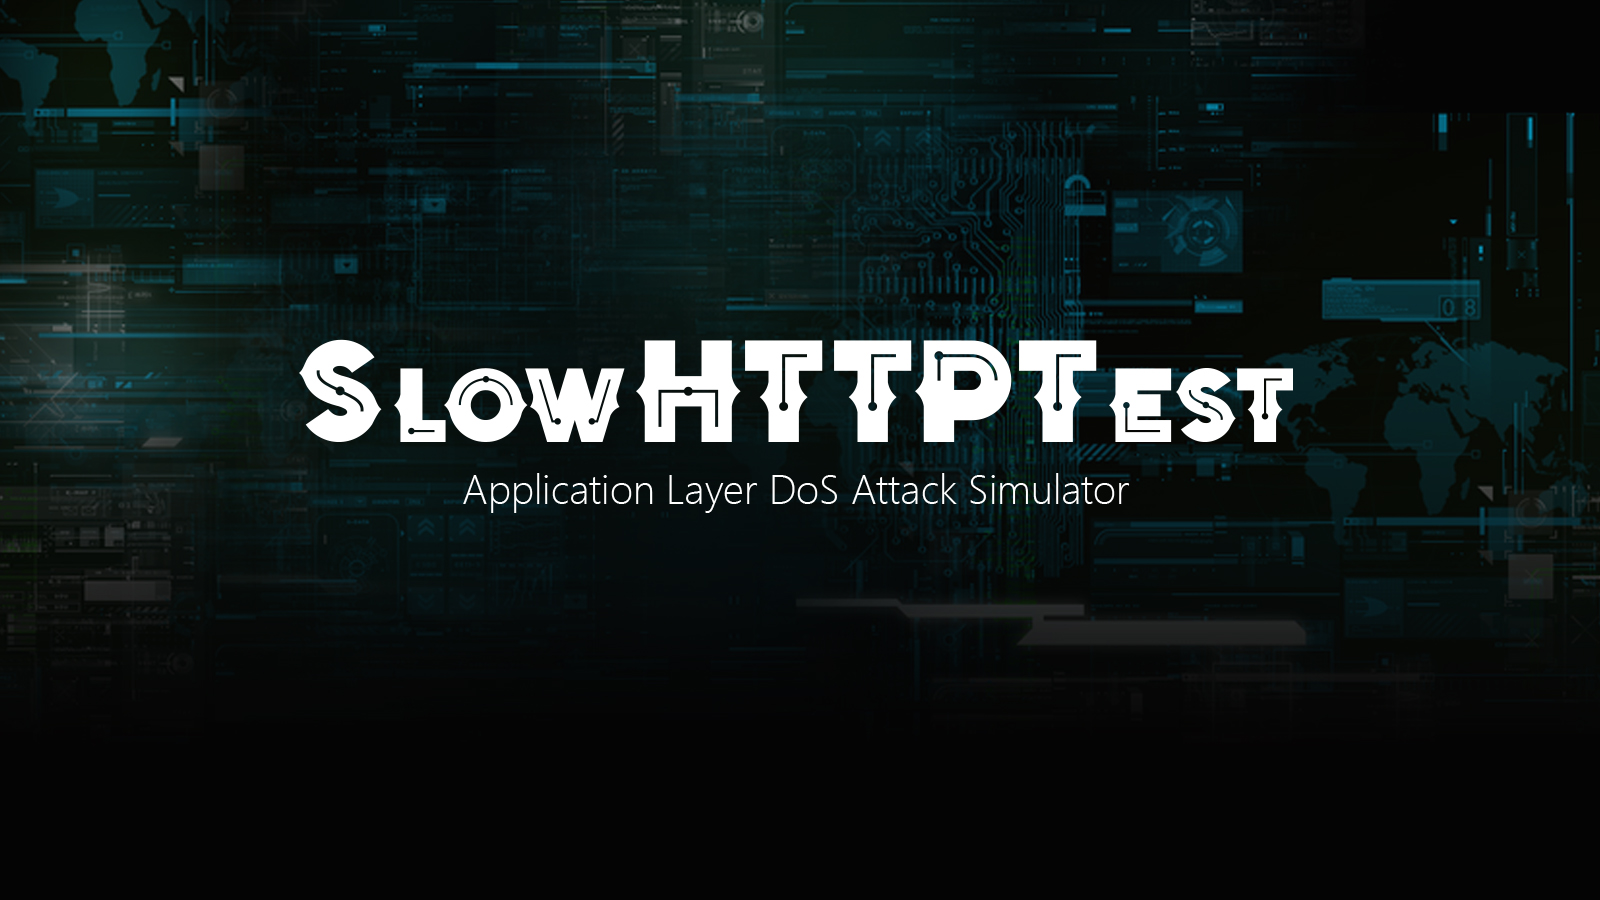 SlowHTTPTest - Application Layer DoS Attack Simulator